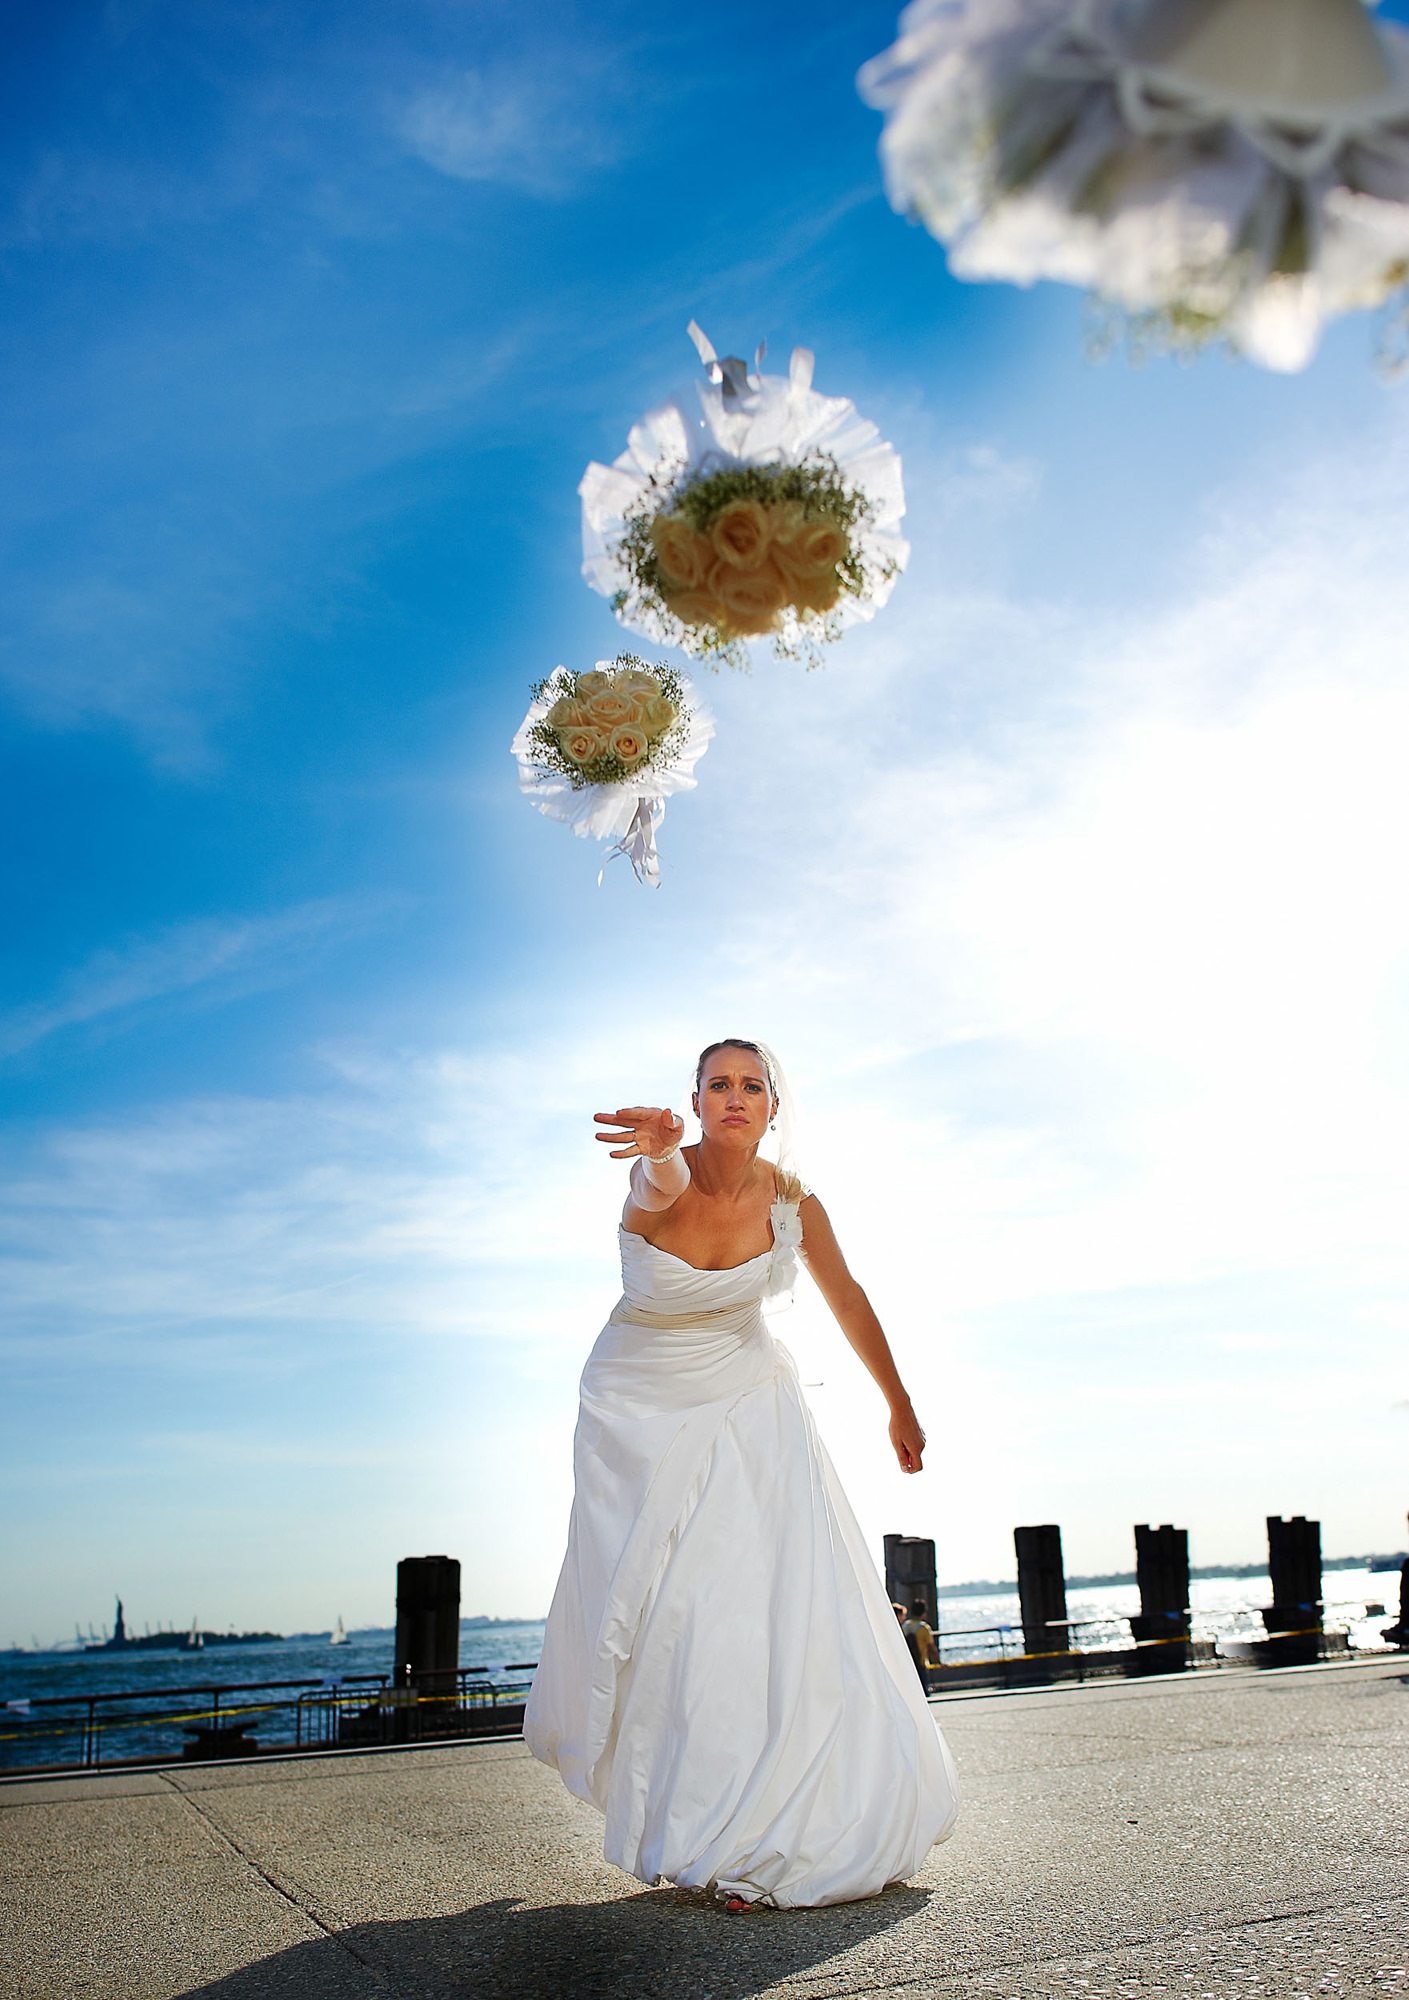 Creative composite of bride throwing bouquet at camera, photo by The Brenizers